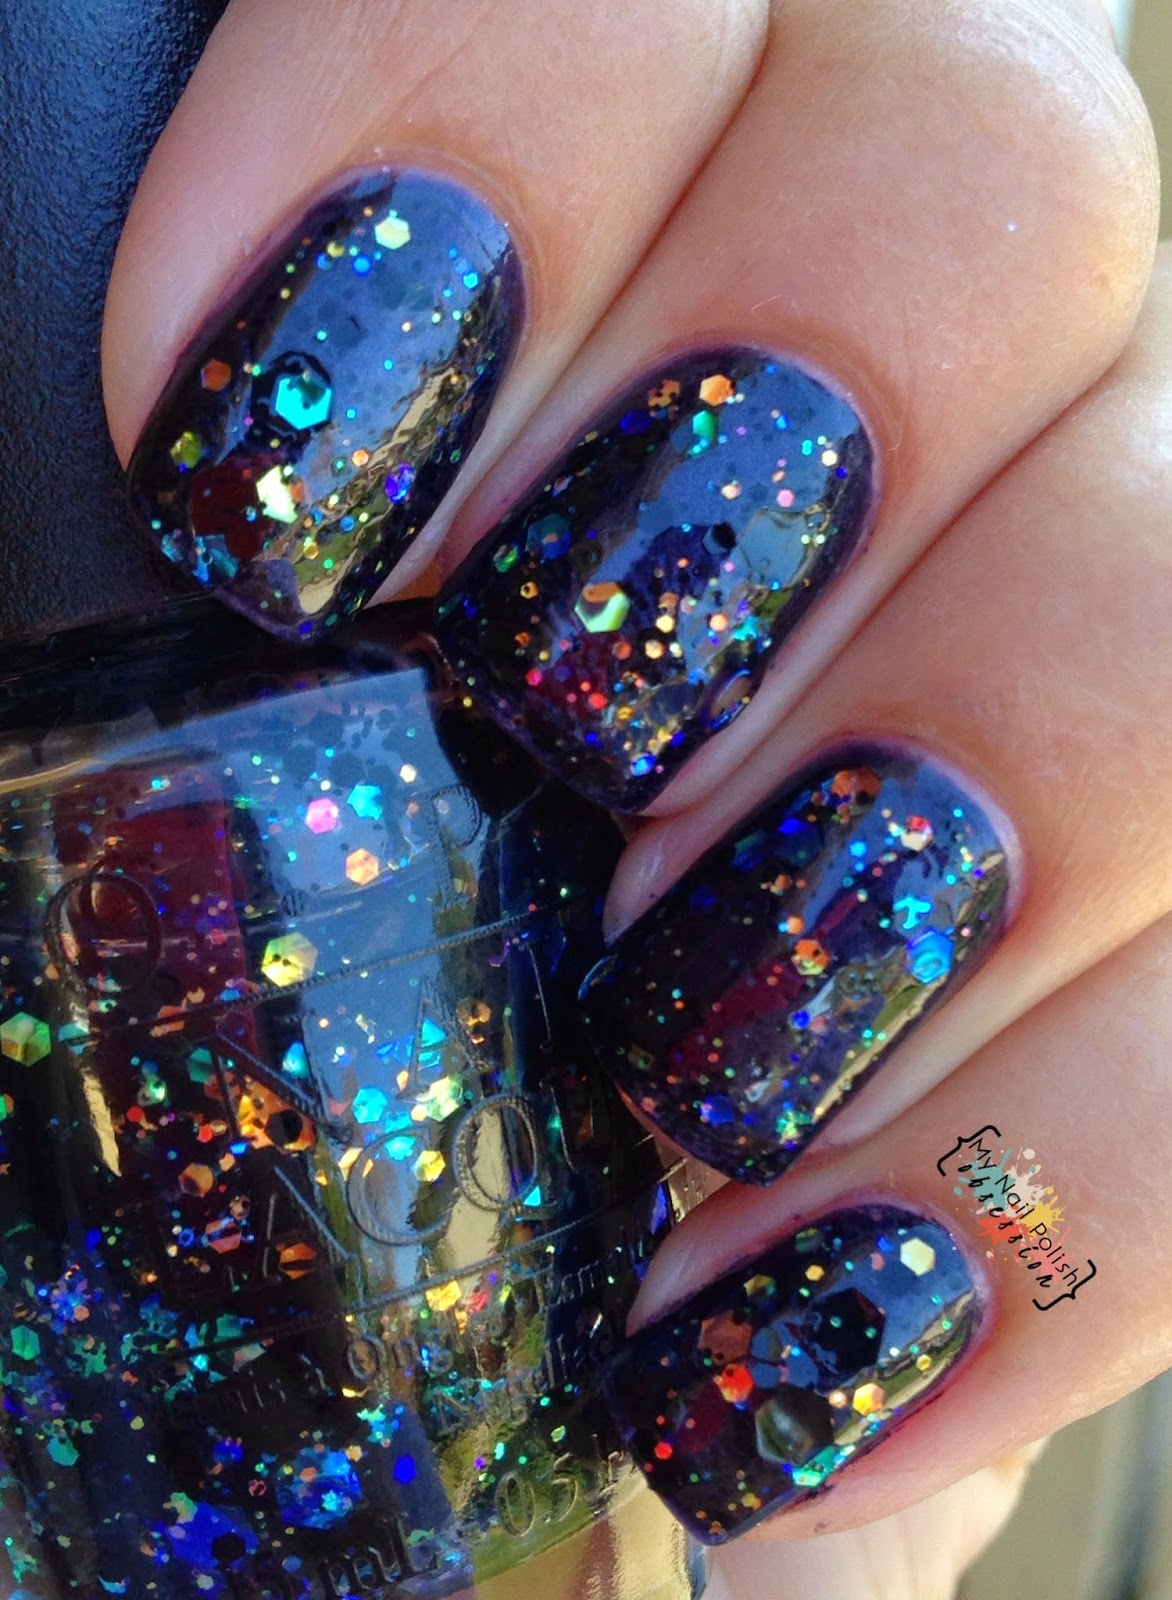 My Nail Polish Obsession: OPI Comet In The Sky